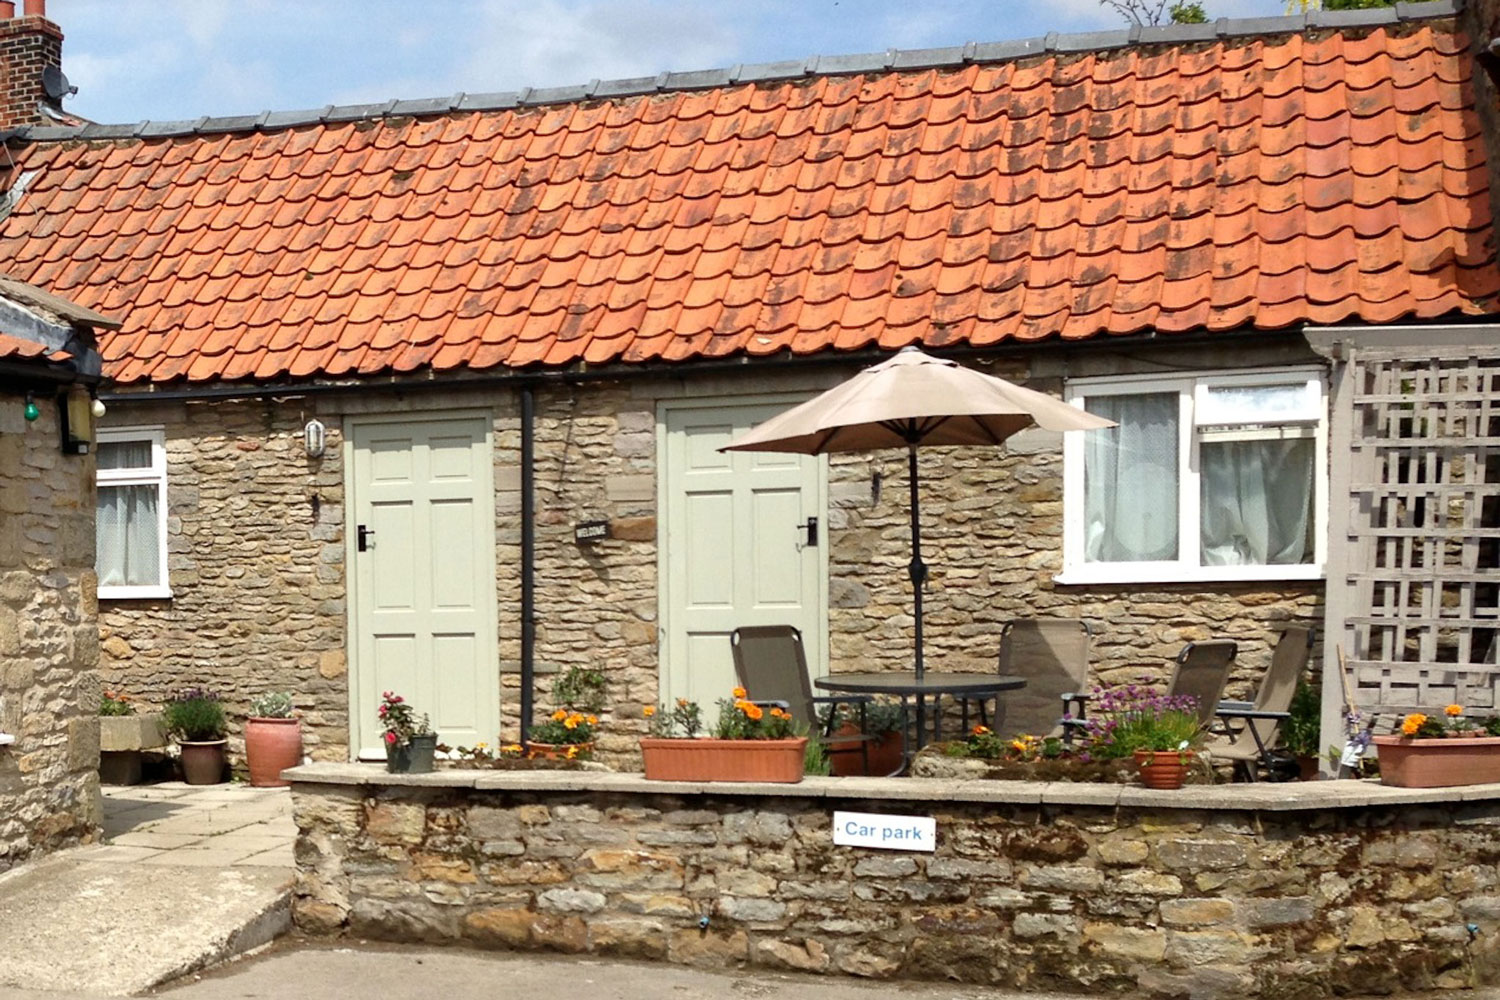 Our Annexe Accommodation